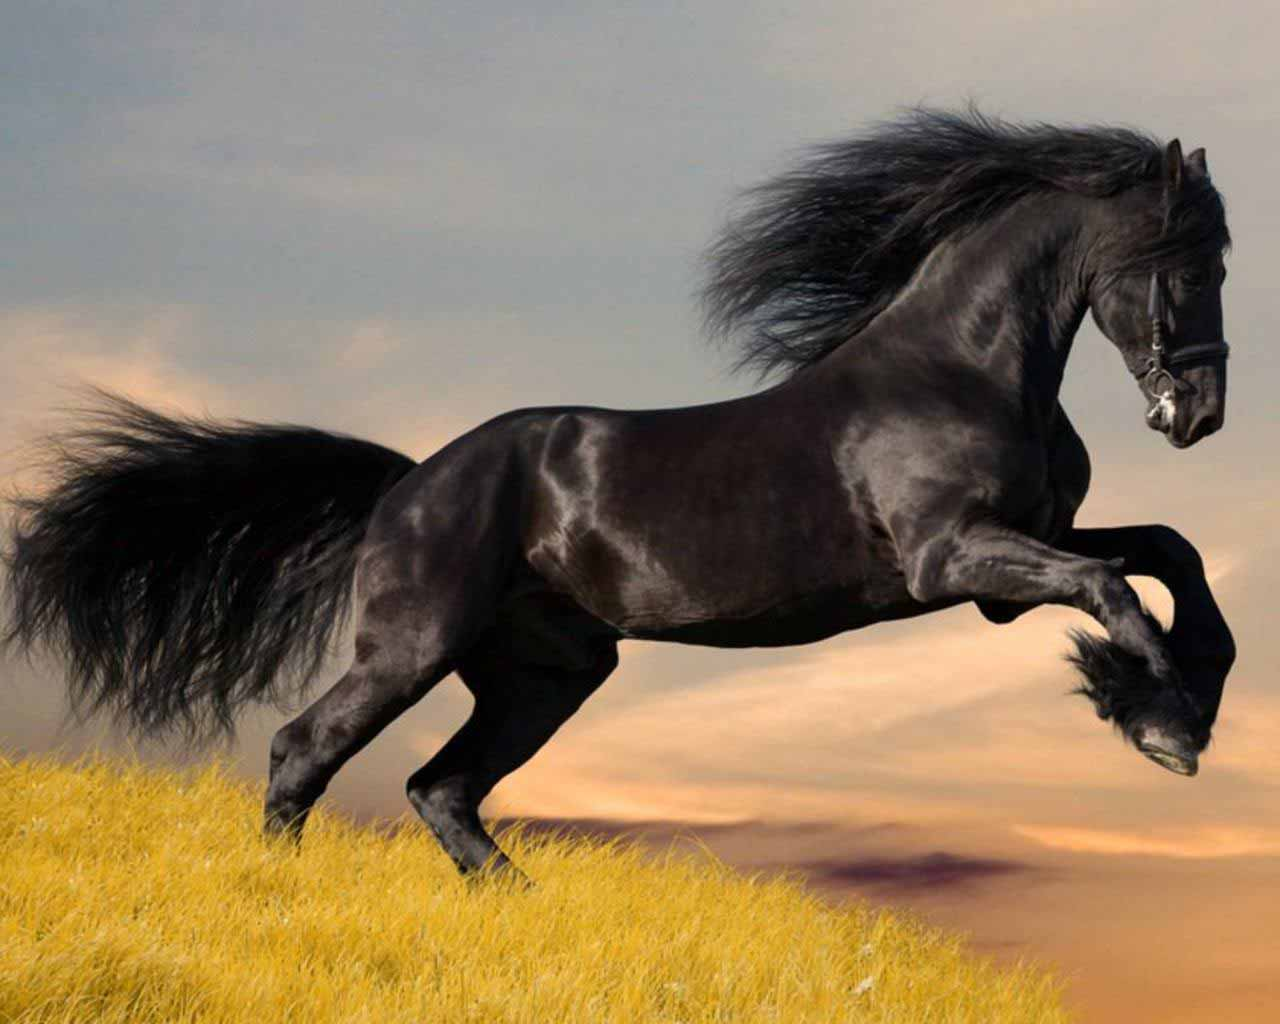 Simple   Wallpaper Horse Flower - Horse+Wallpaper8  You Should Have_199677.jpg